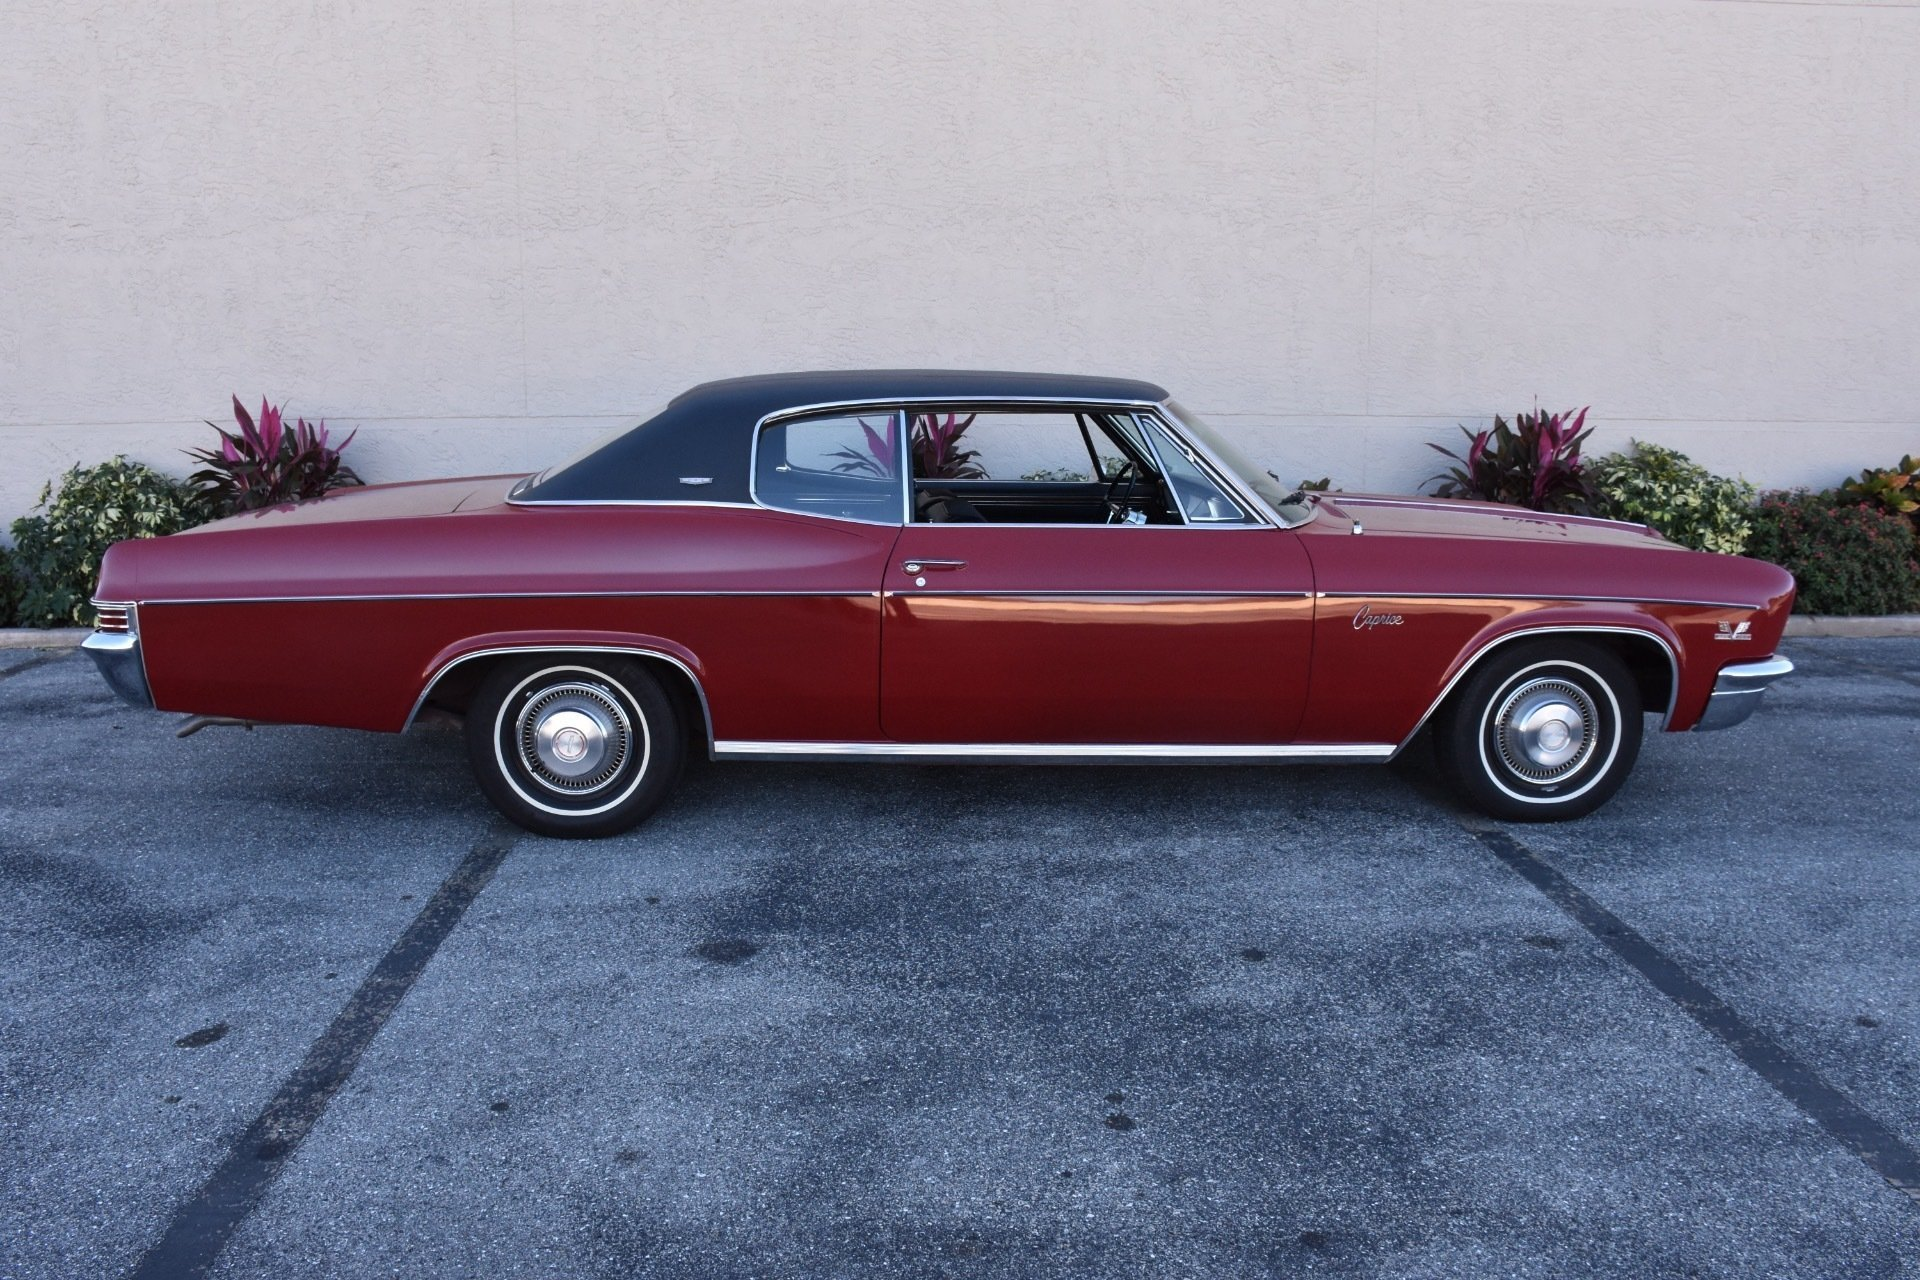 1966 Chevrolet Caprice Ideal Classic Cars Llc Chevy For Sale 4528bd9def47 Low Res 4534d98e0ea2